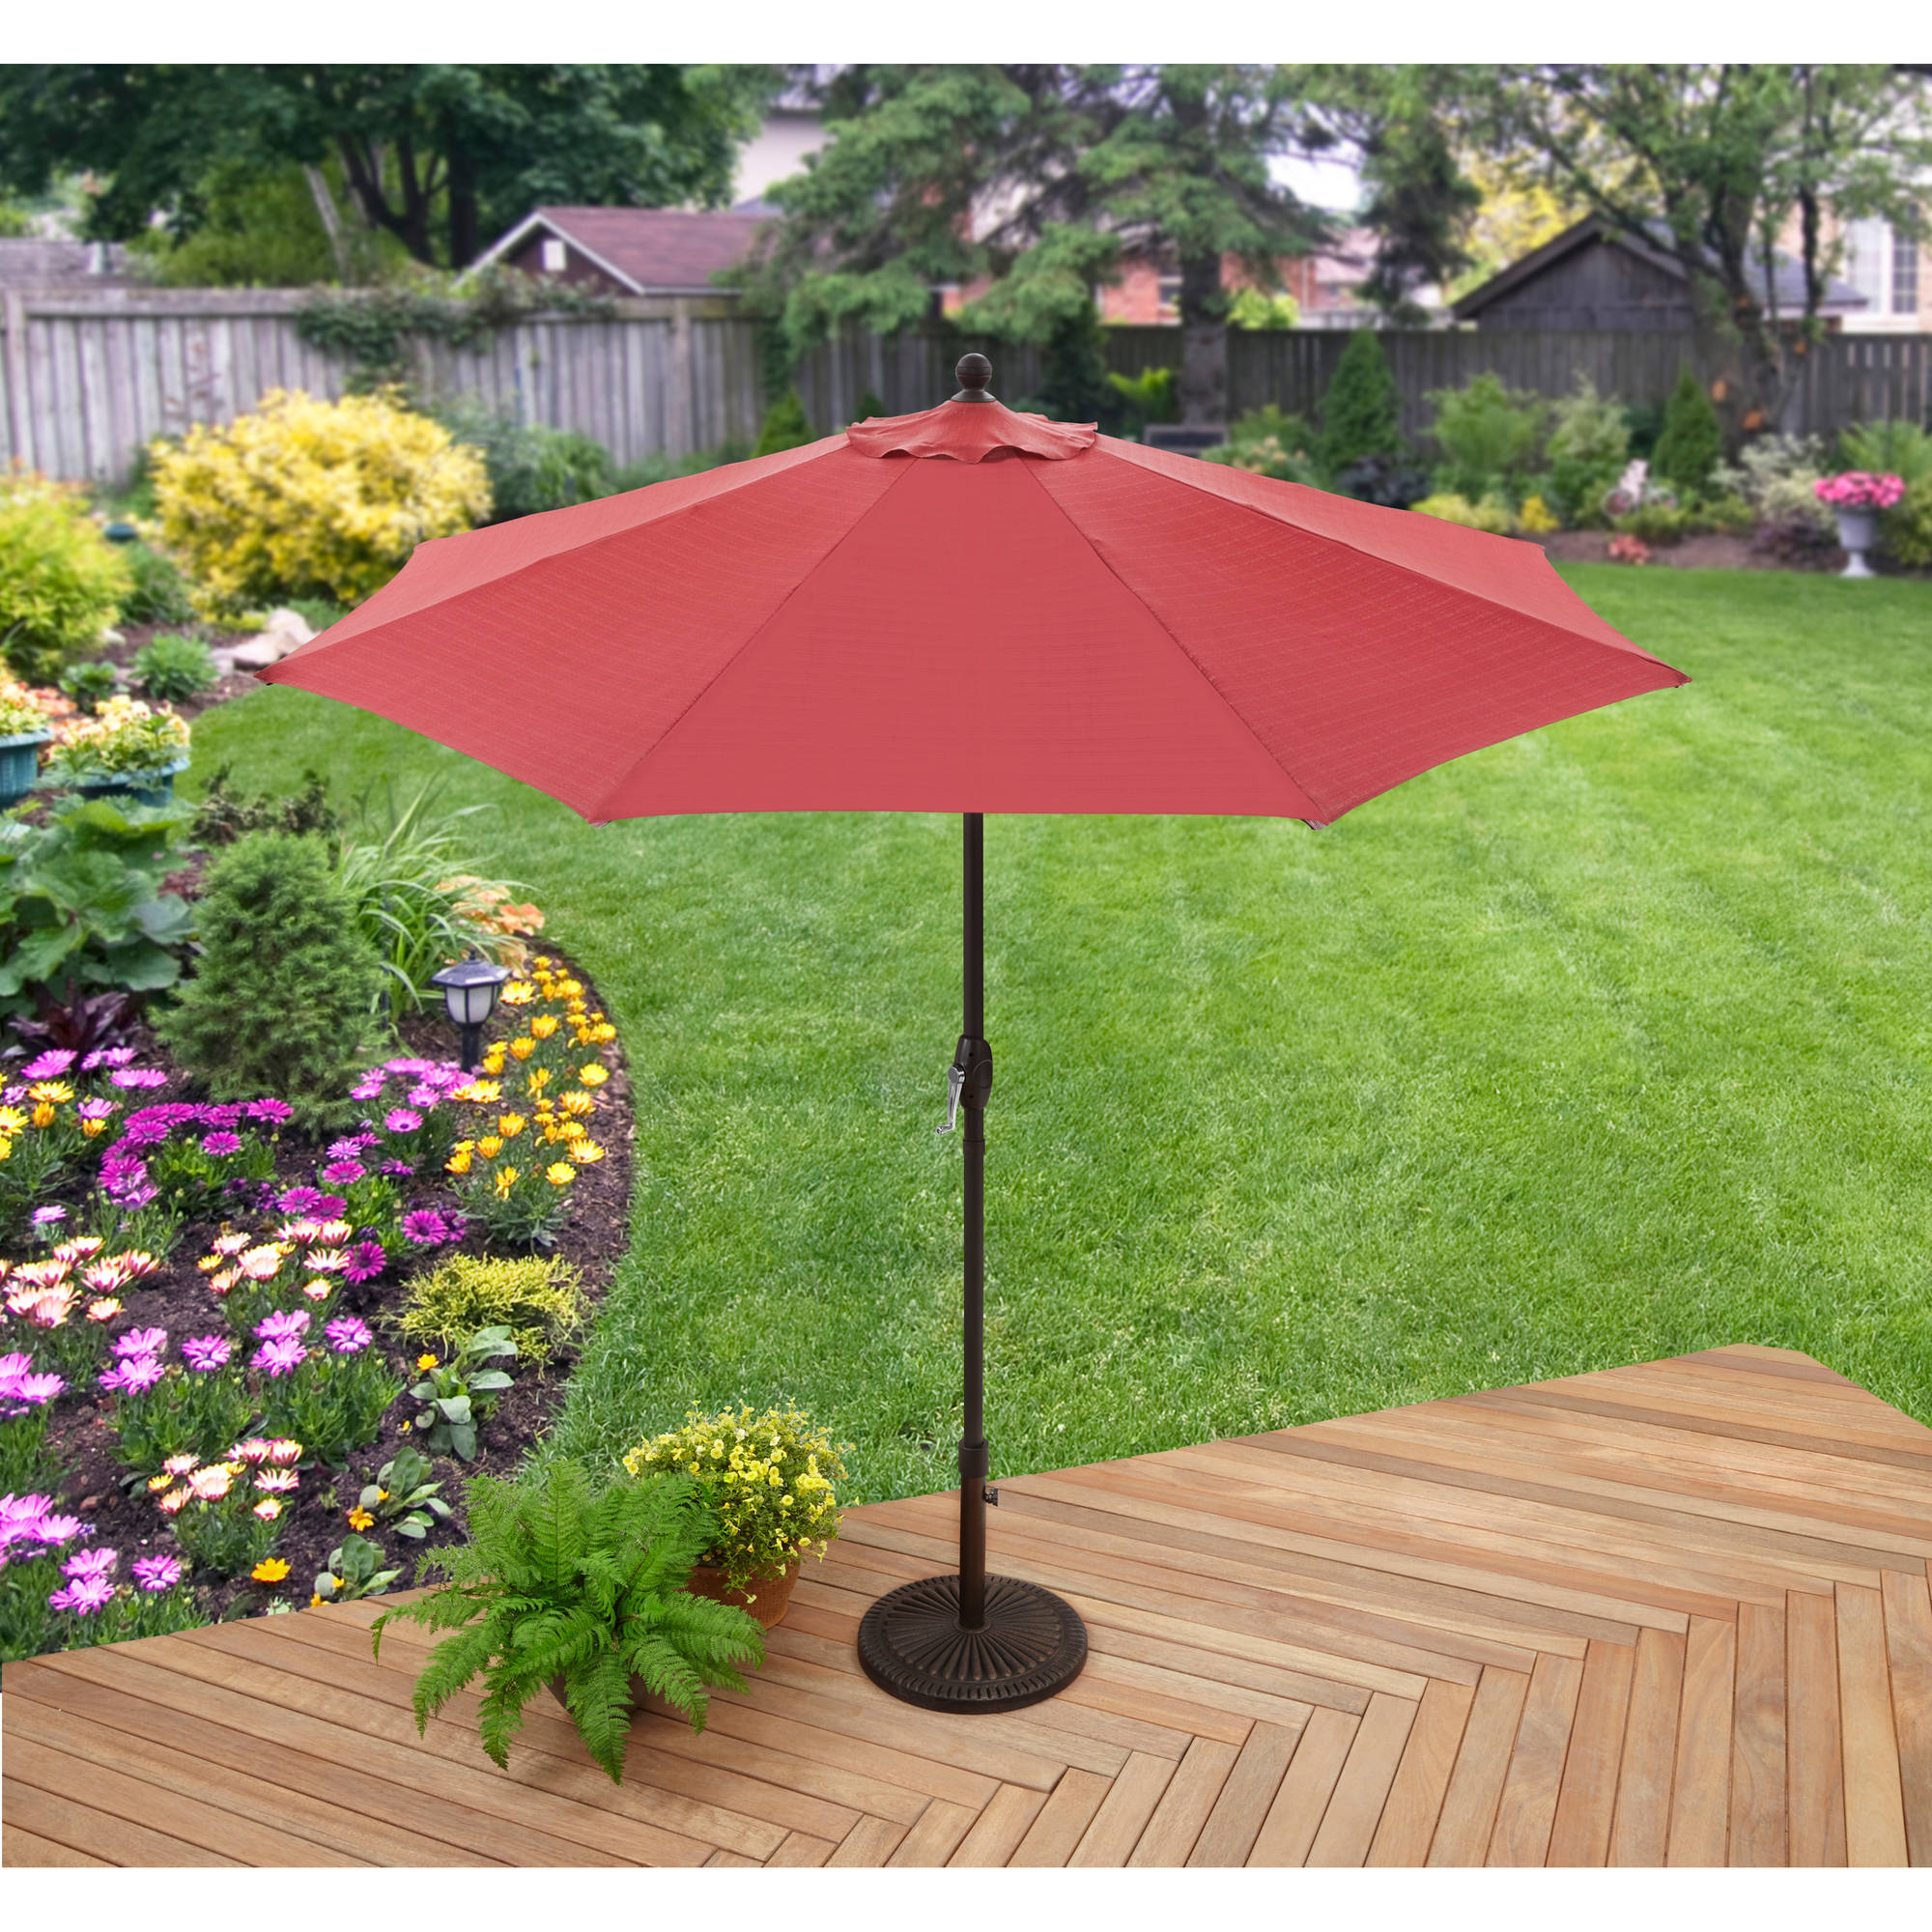 Better Homes And Gardens 9u0027 Market Umbrella, Red   Walmart.com